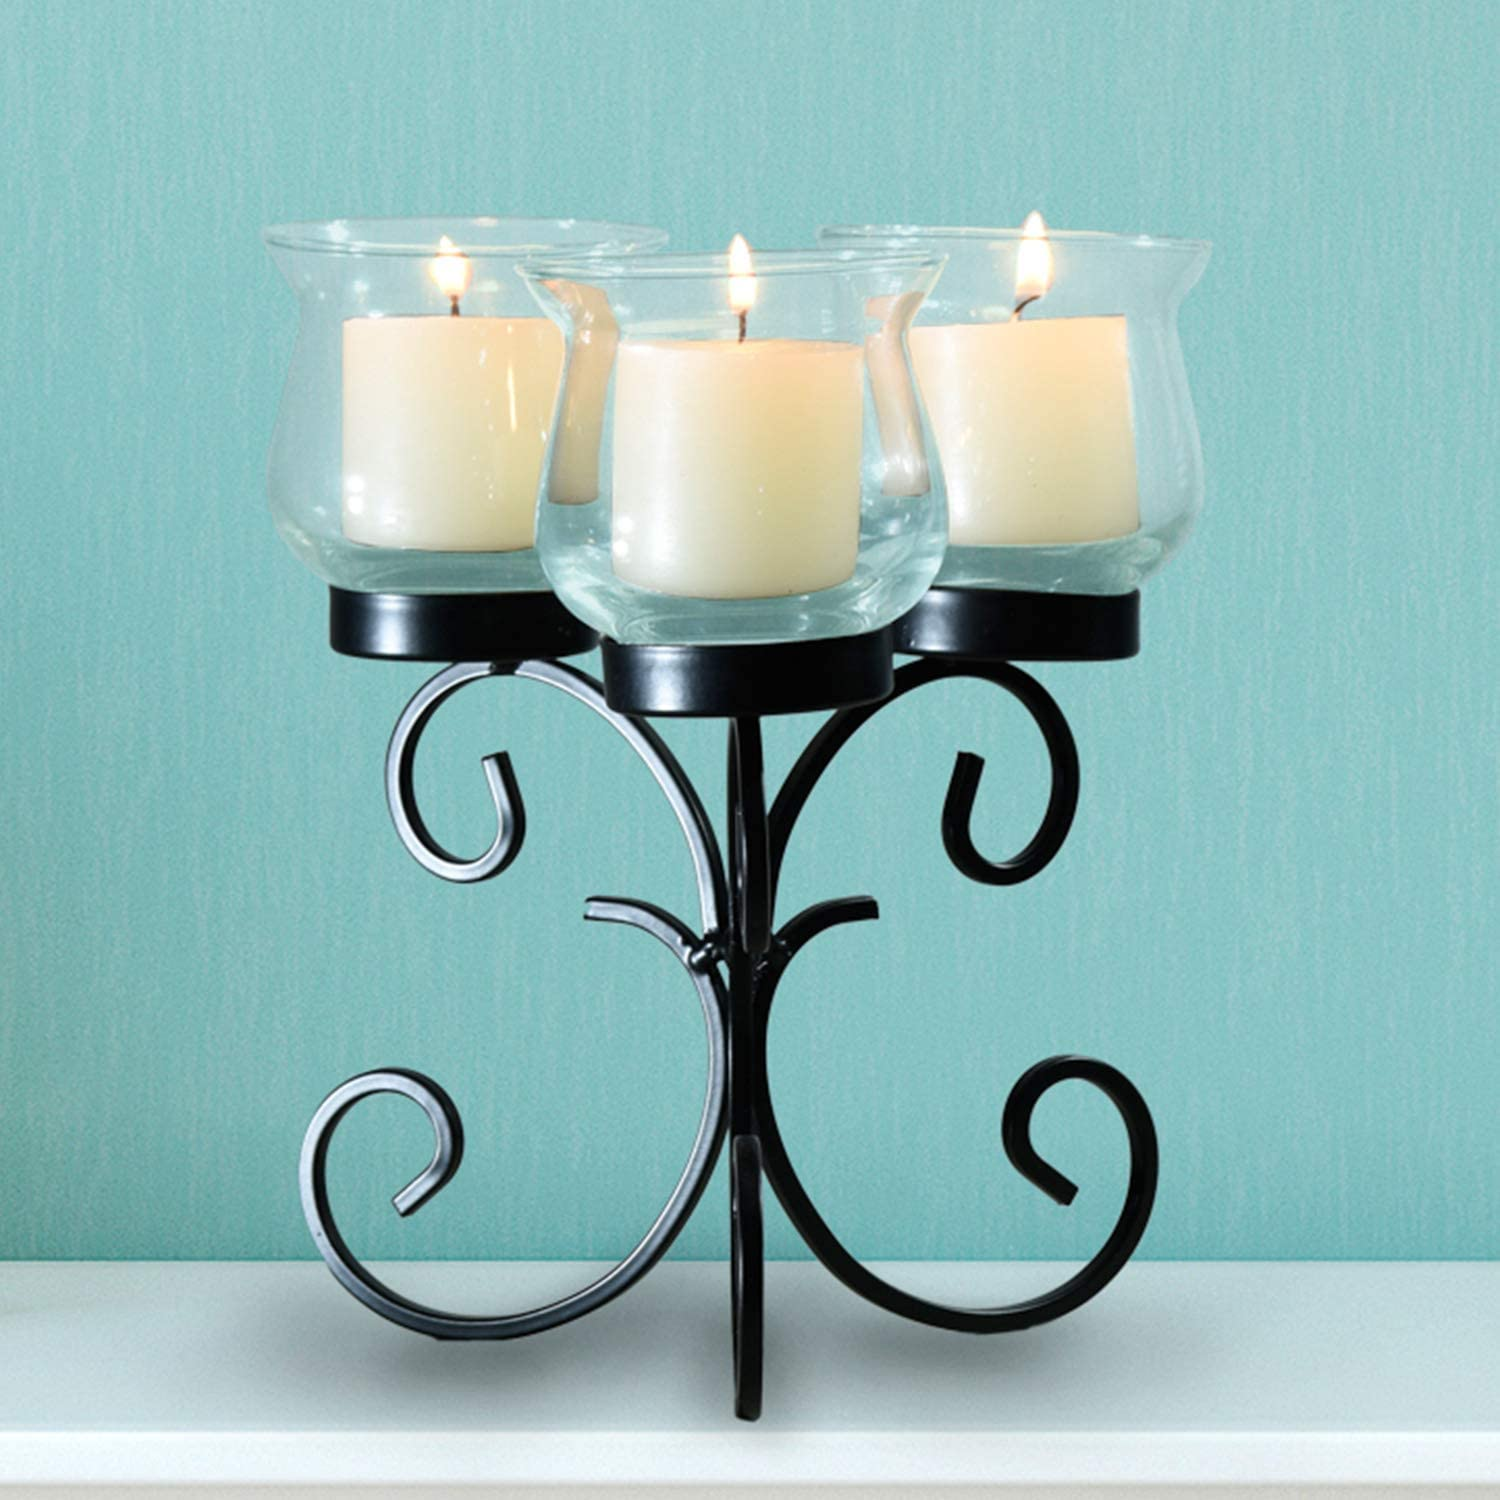 Wave Iron Tea Light Candle Holder for Party Wedding Bar Centerpiece Decor/_S